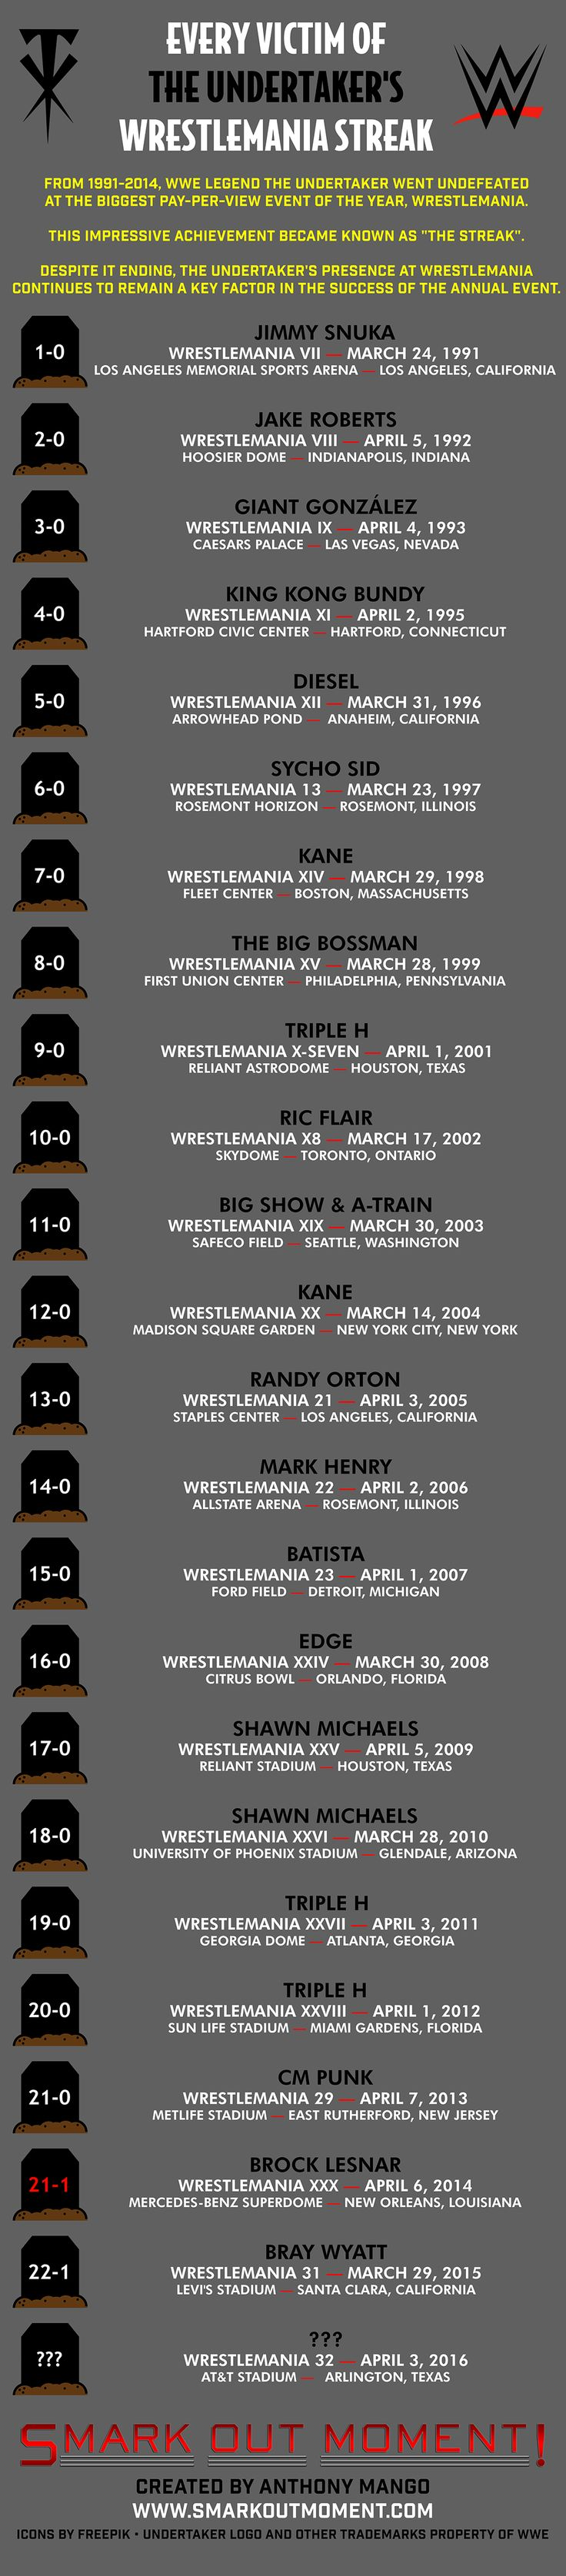 WWE-Undertaker-WrestleMania-Opponents-Infographic